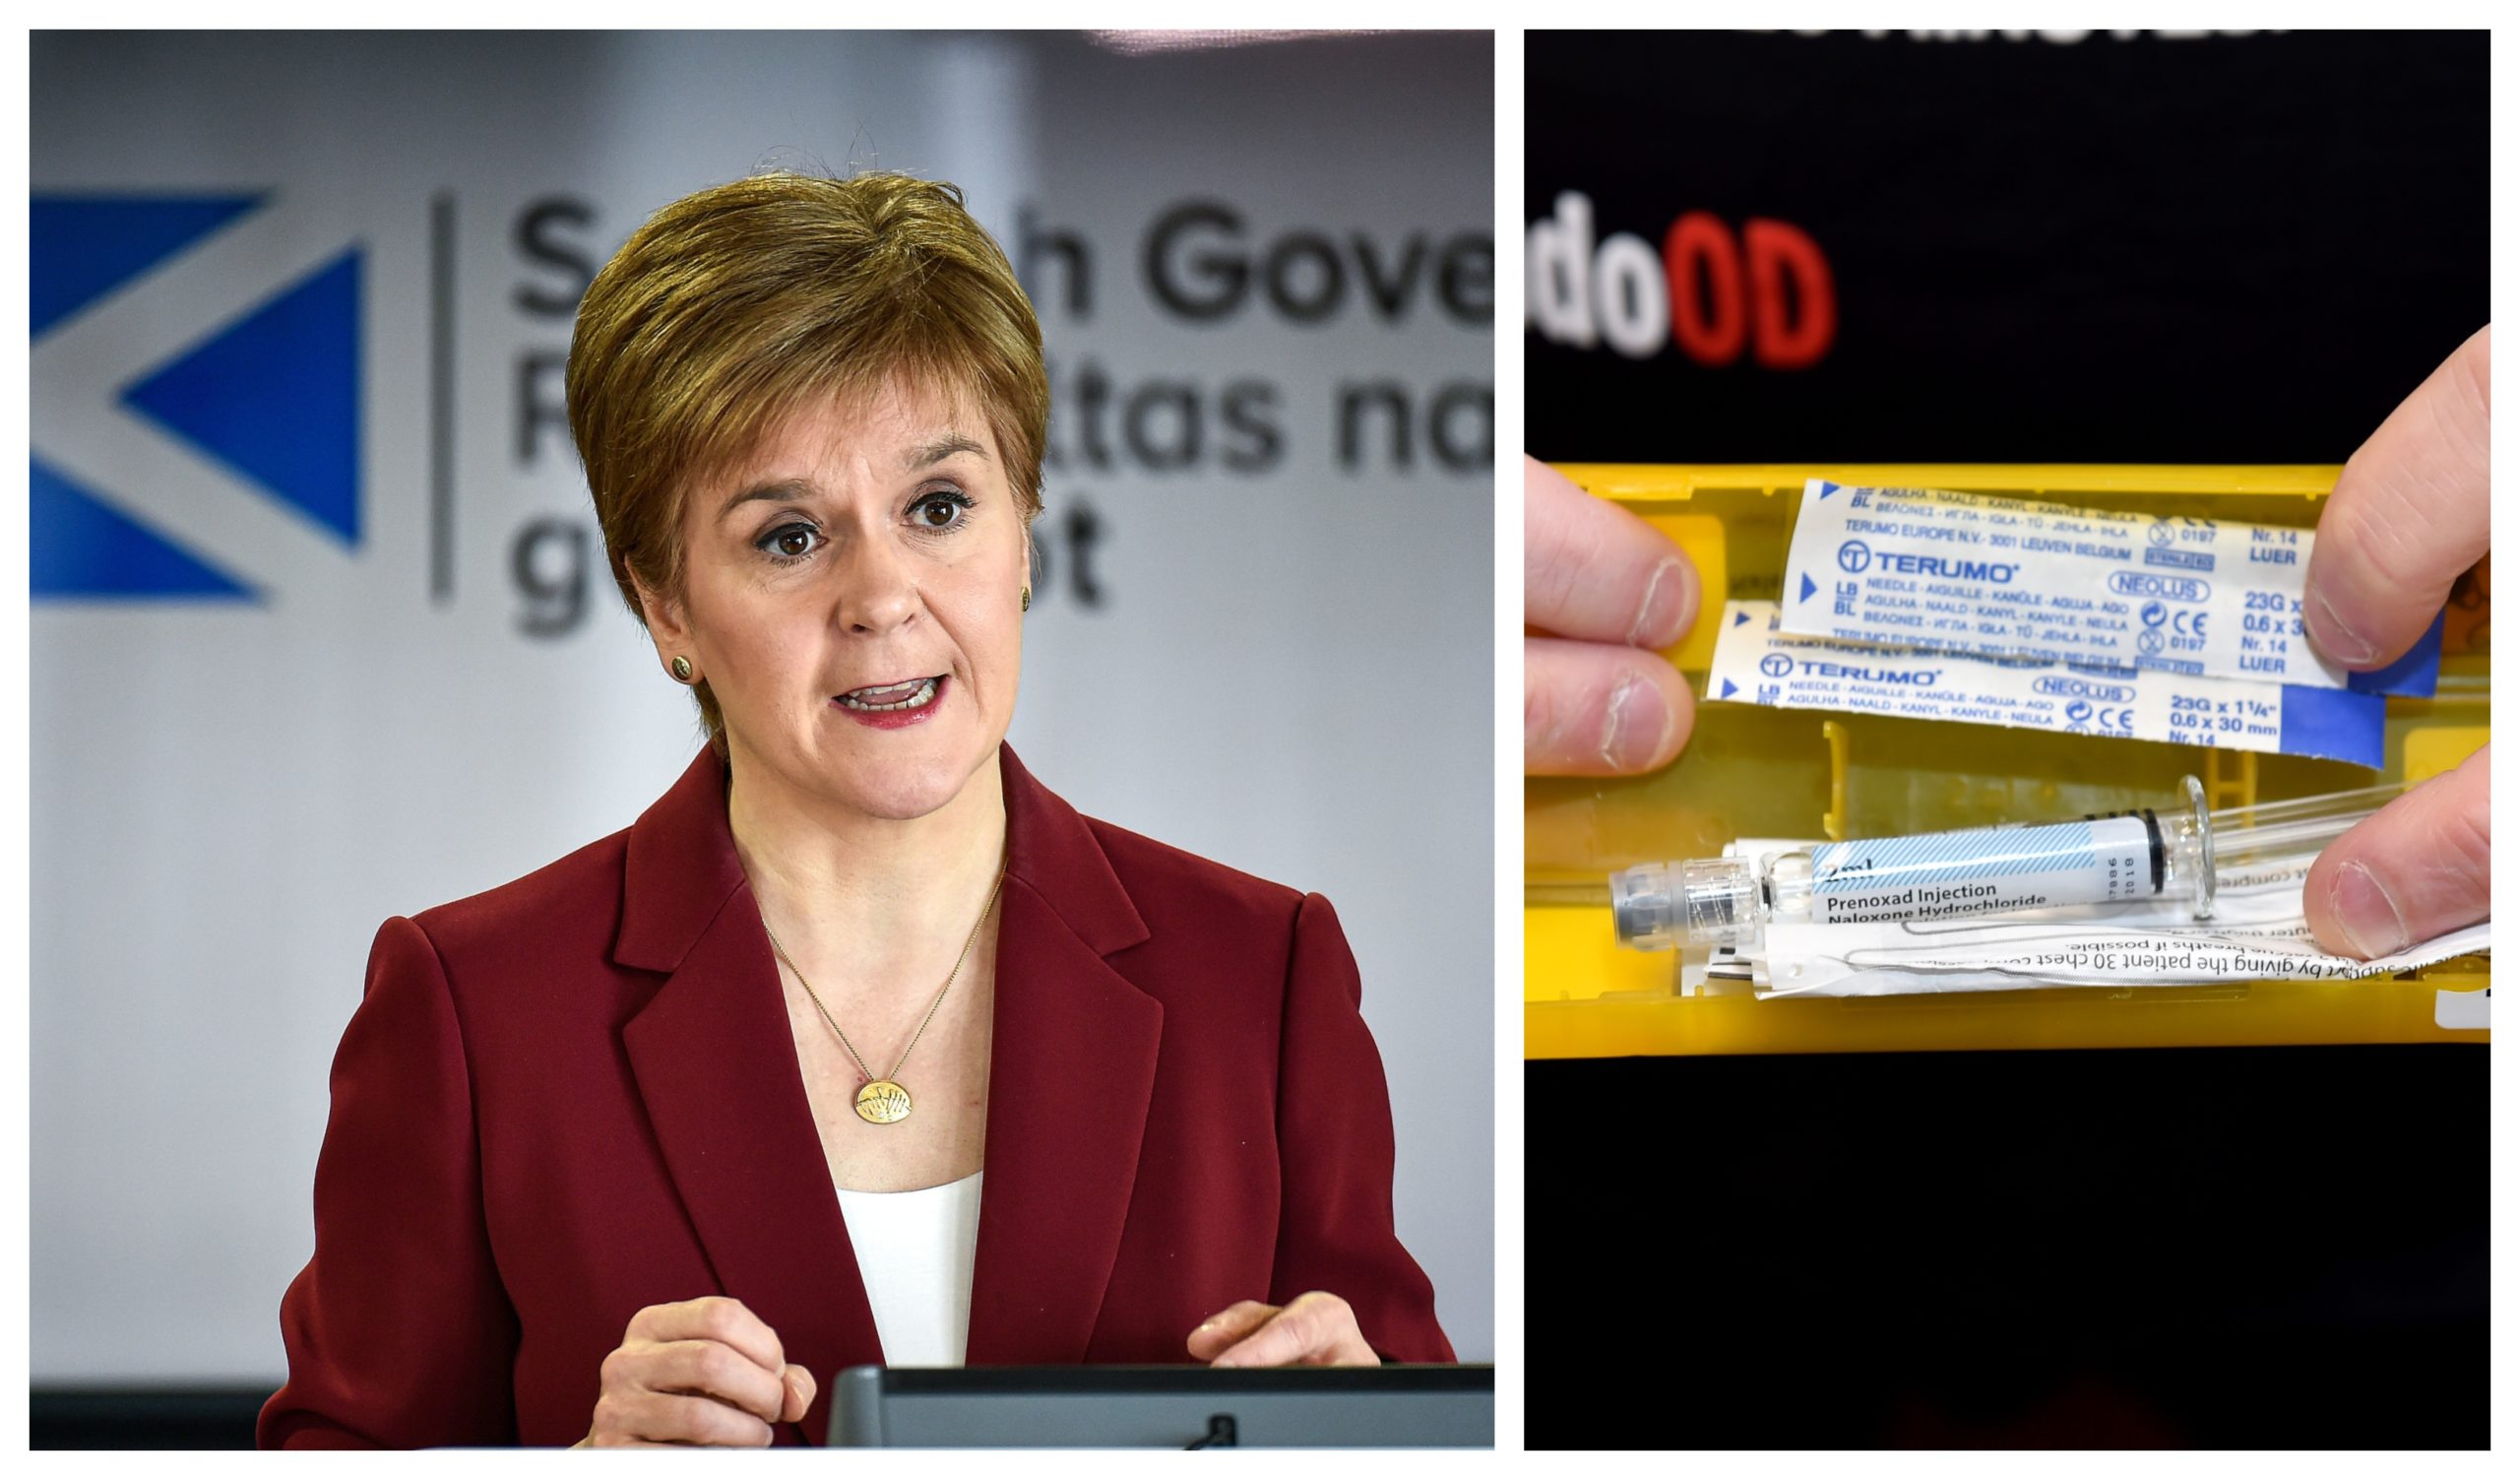 First Minister Nicola Sturgeon, left, and a Naloxone kit, right.